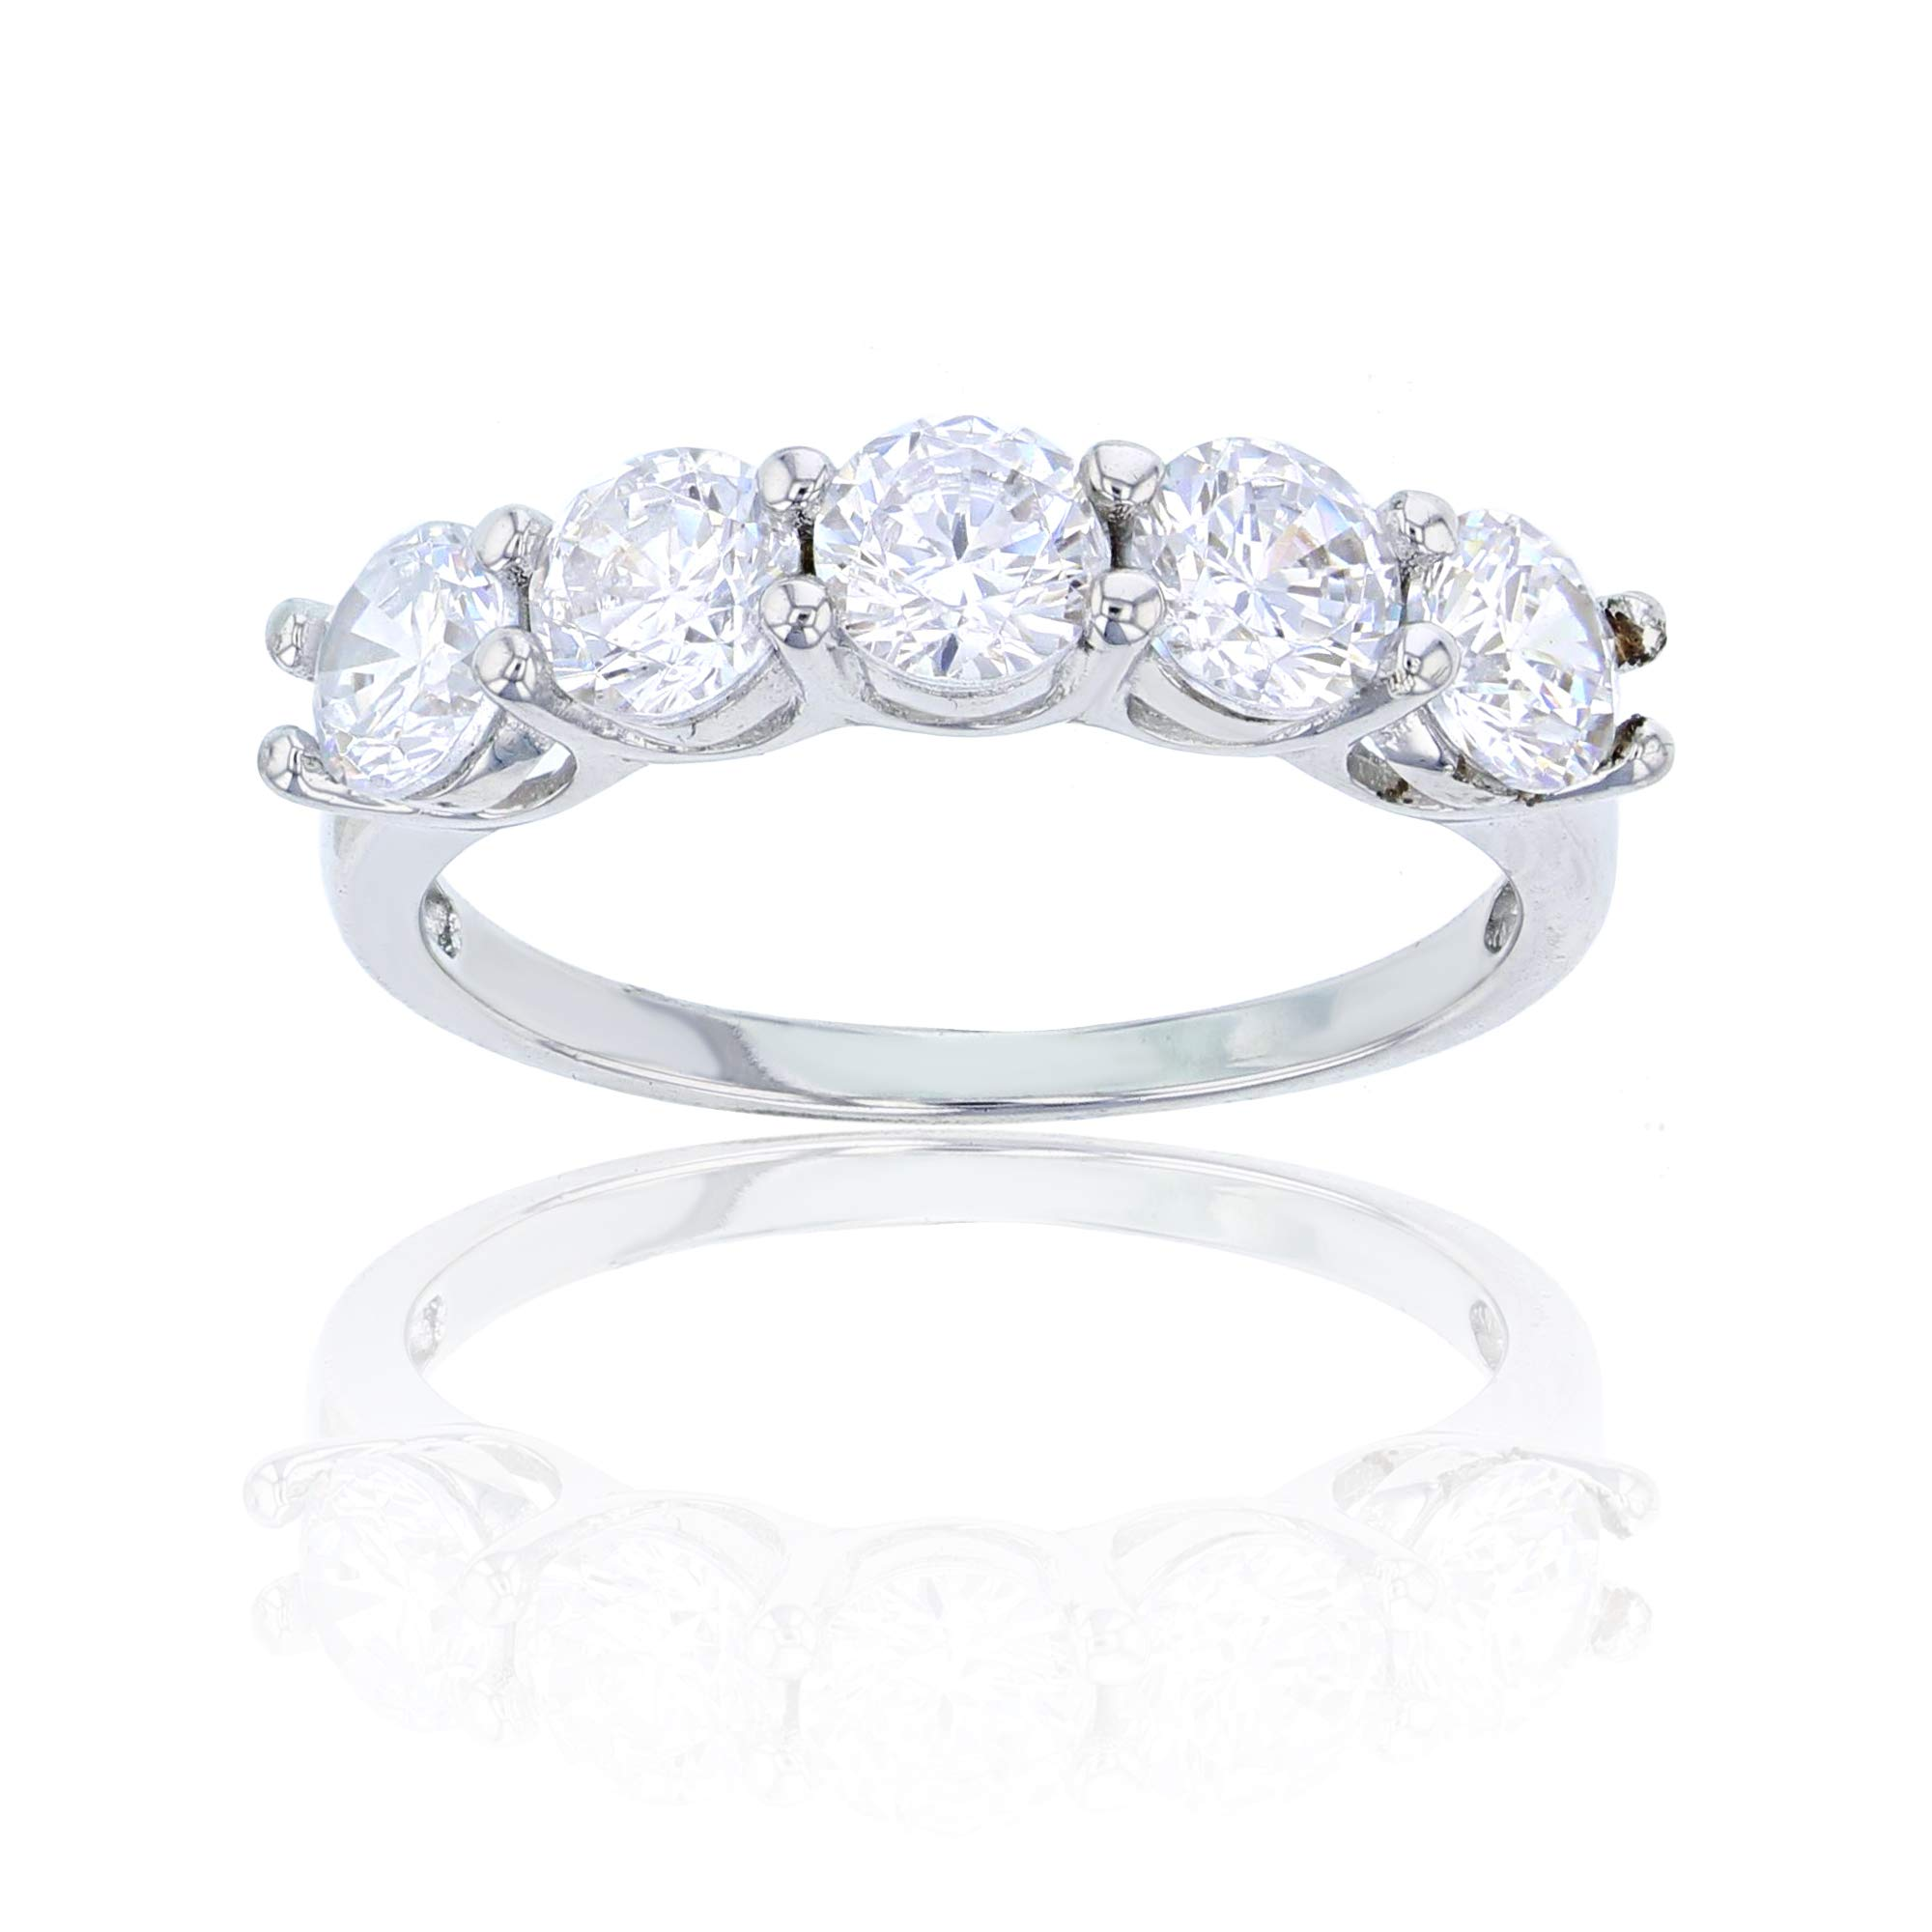 Decadence Sterling Silver Rhodium 5mm Round Cut 5 Stone Cubic Zirconia Anniversary Band